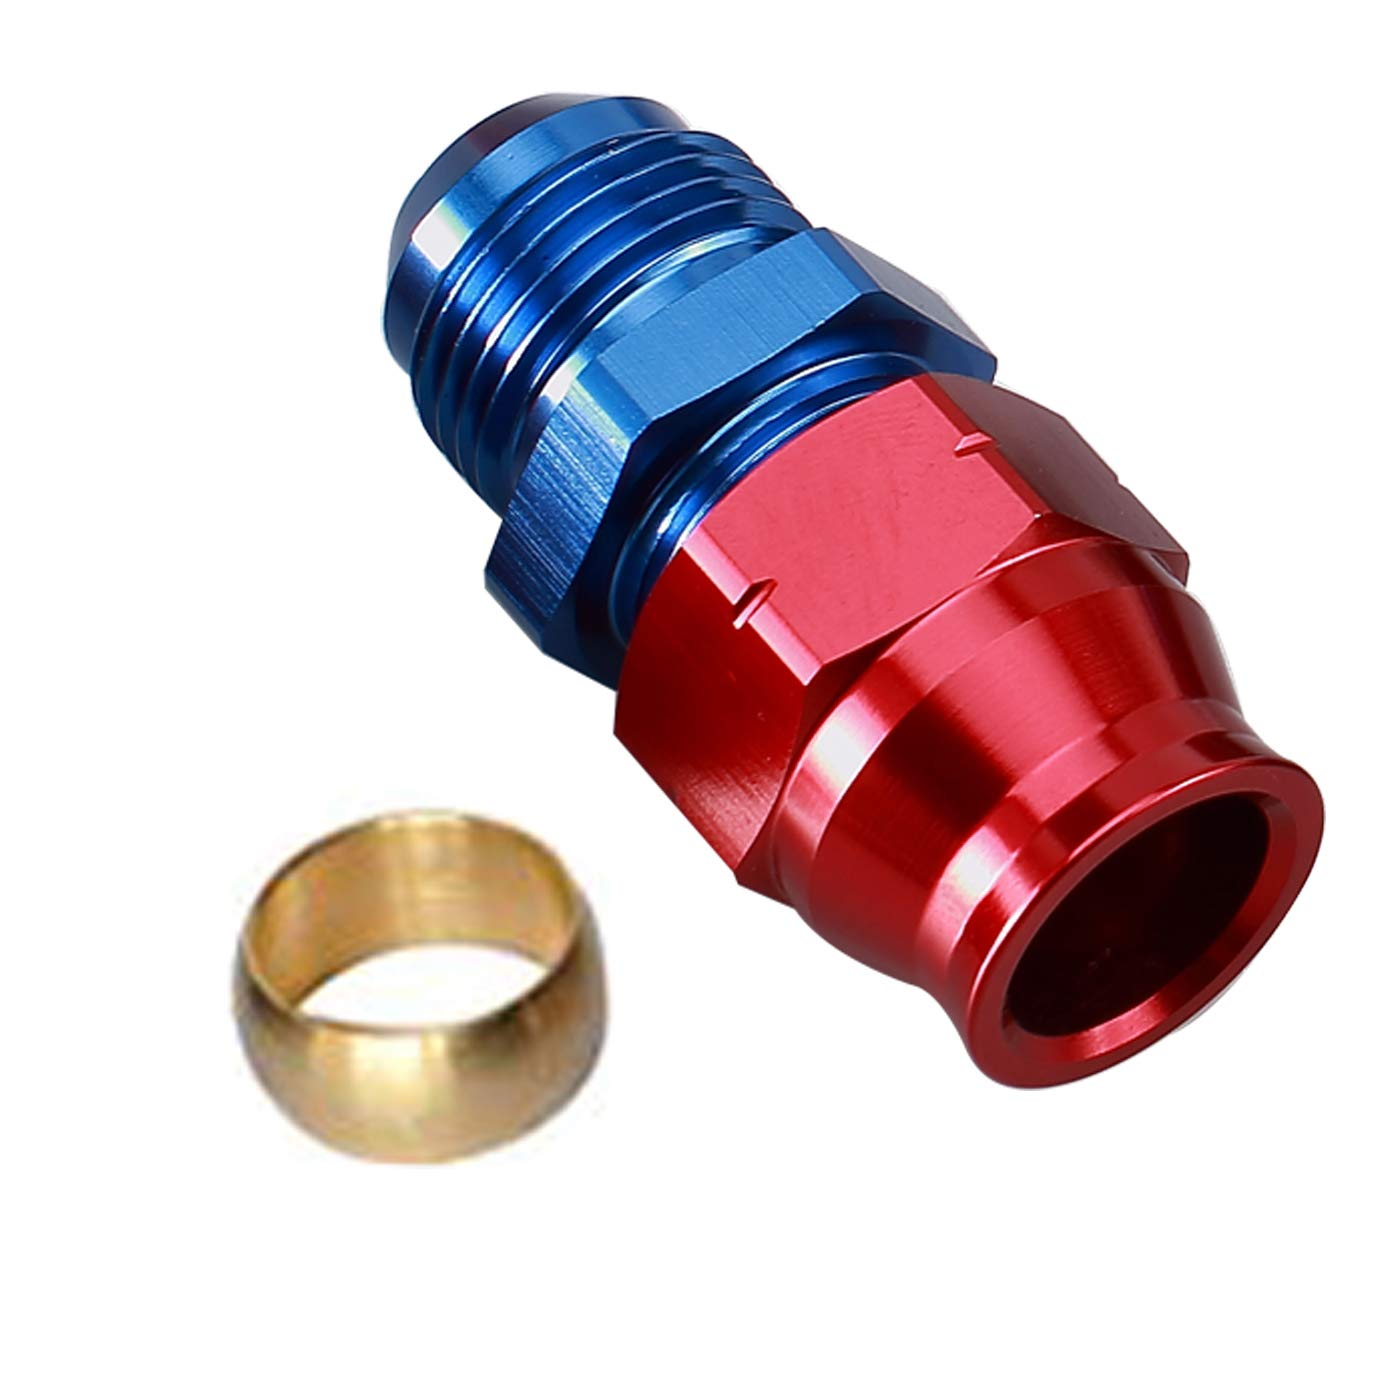 Aluminum Fuel Hardline Fitting Hard Fuel Tubing Fitting for hardline tube 5//16 inch 7.9mm OD to AN6 female thread Connector Red Blue Anodized